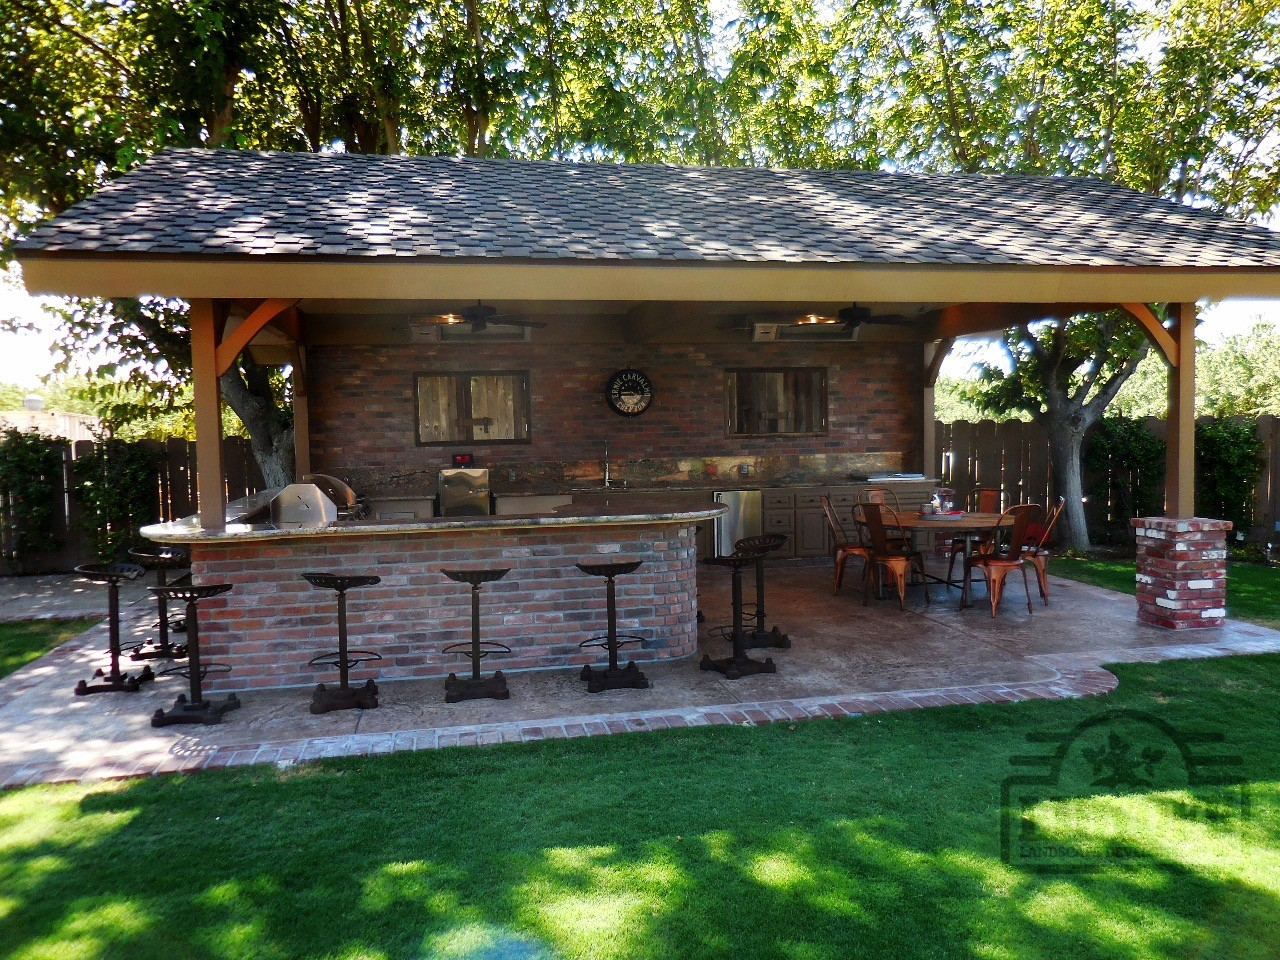 Outdoor Kitchens | Lidyoff Landscaping Development Co. on Patio Kitchen id=11466